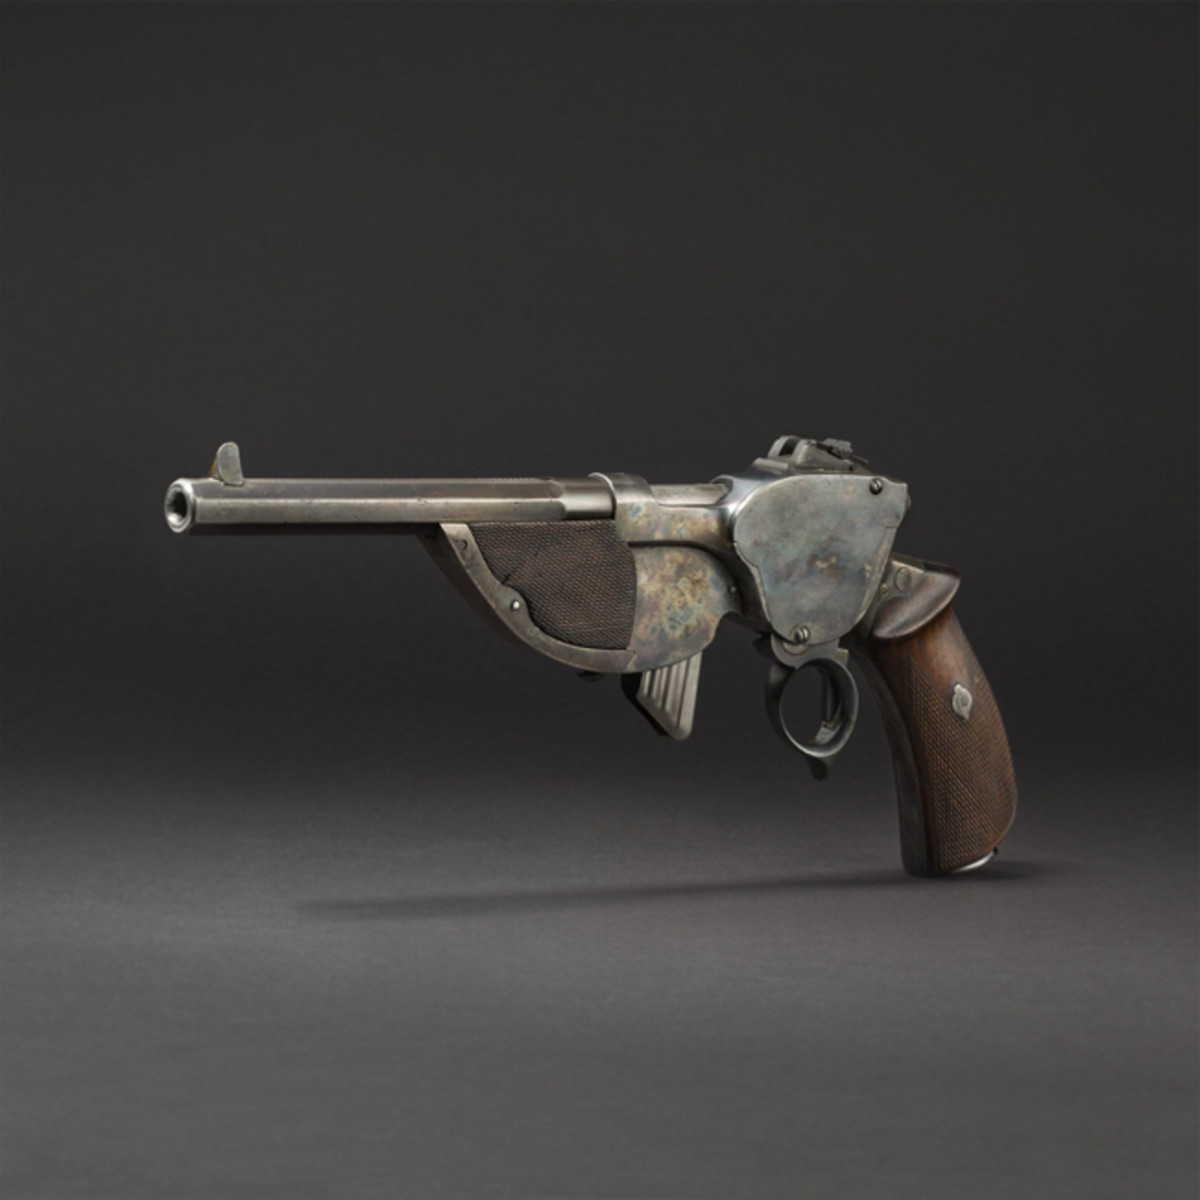 Very good to almost as new Bittner repeating pistol Mod. 1896.